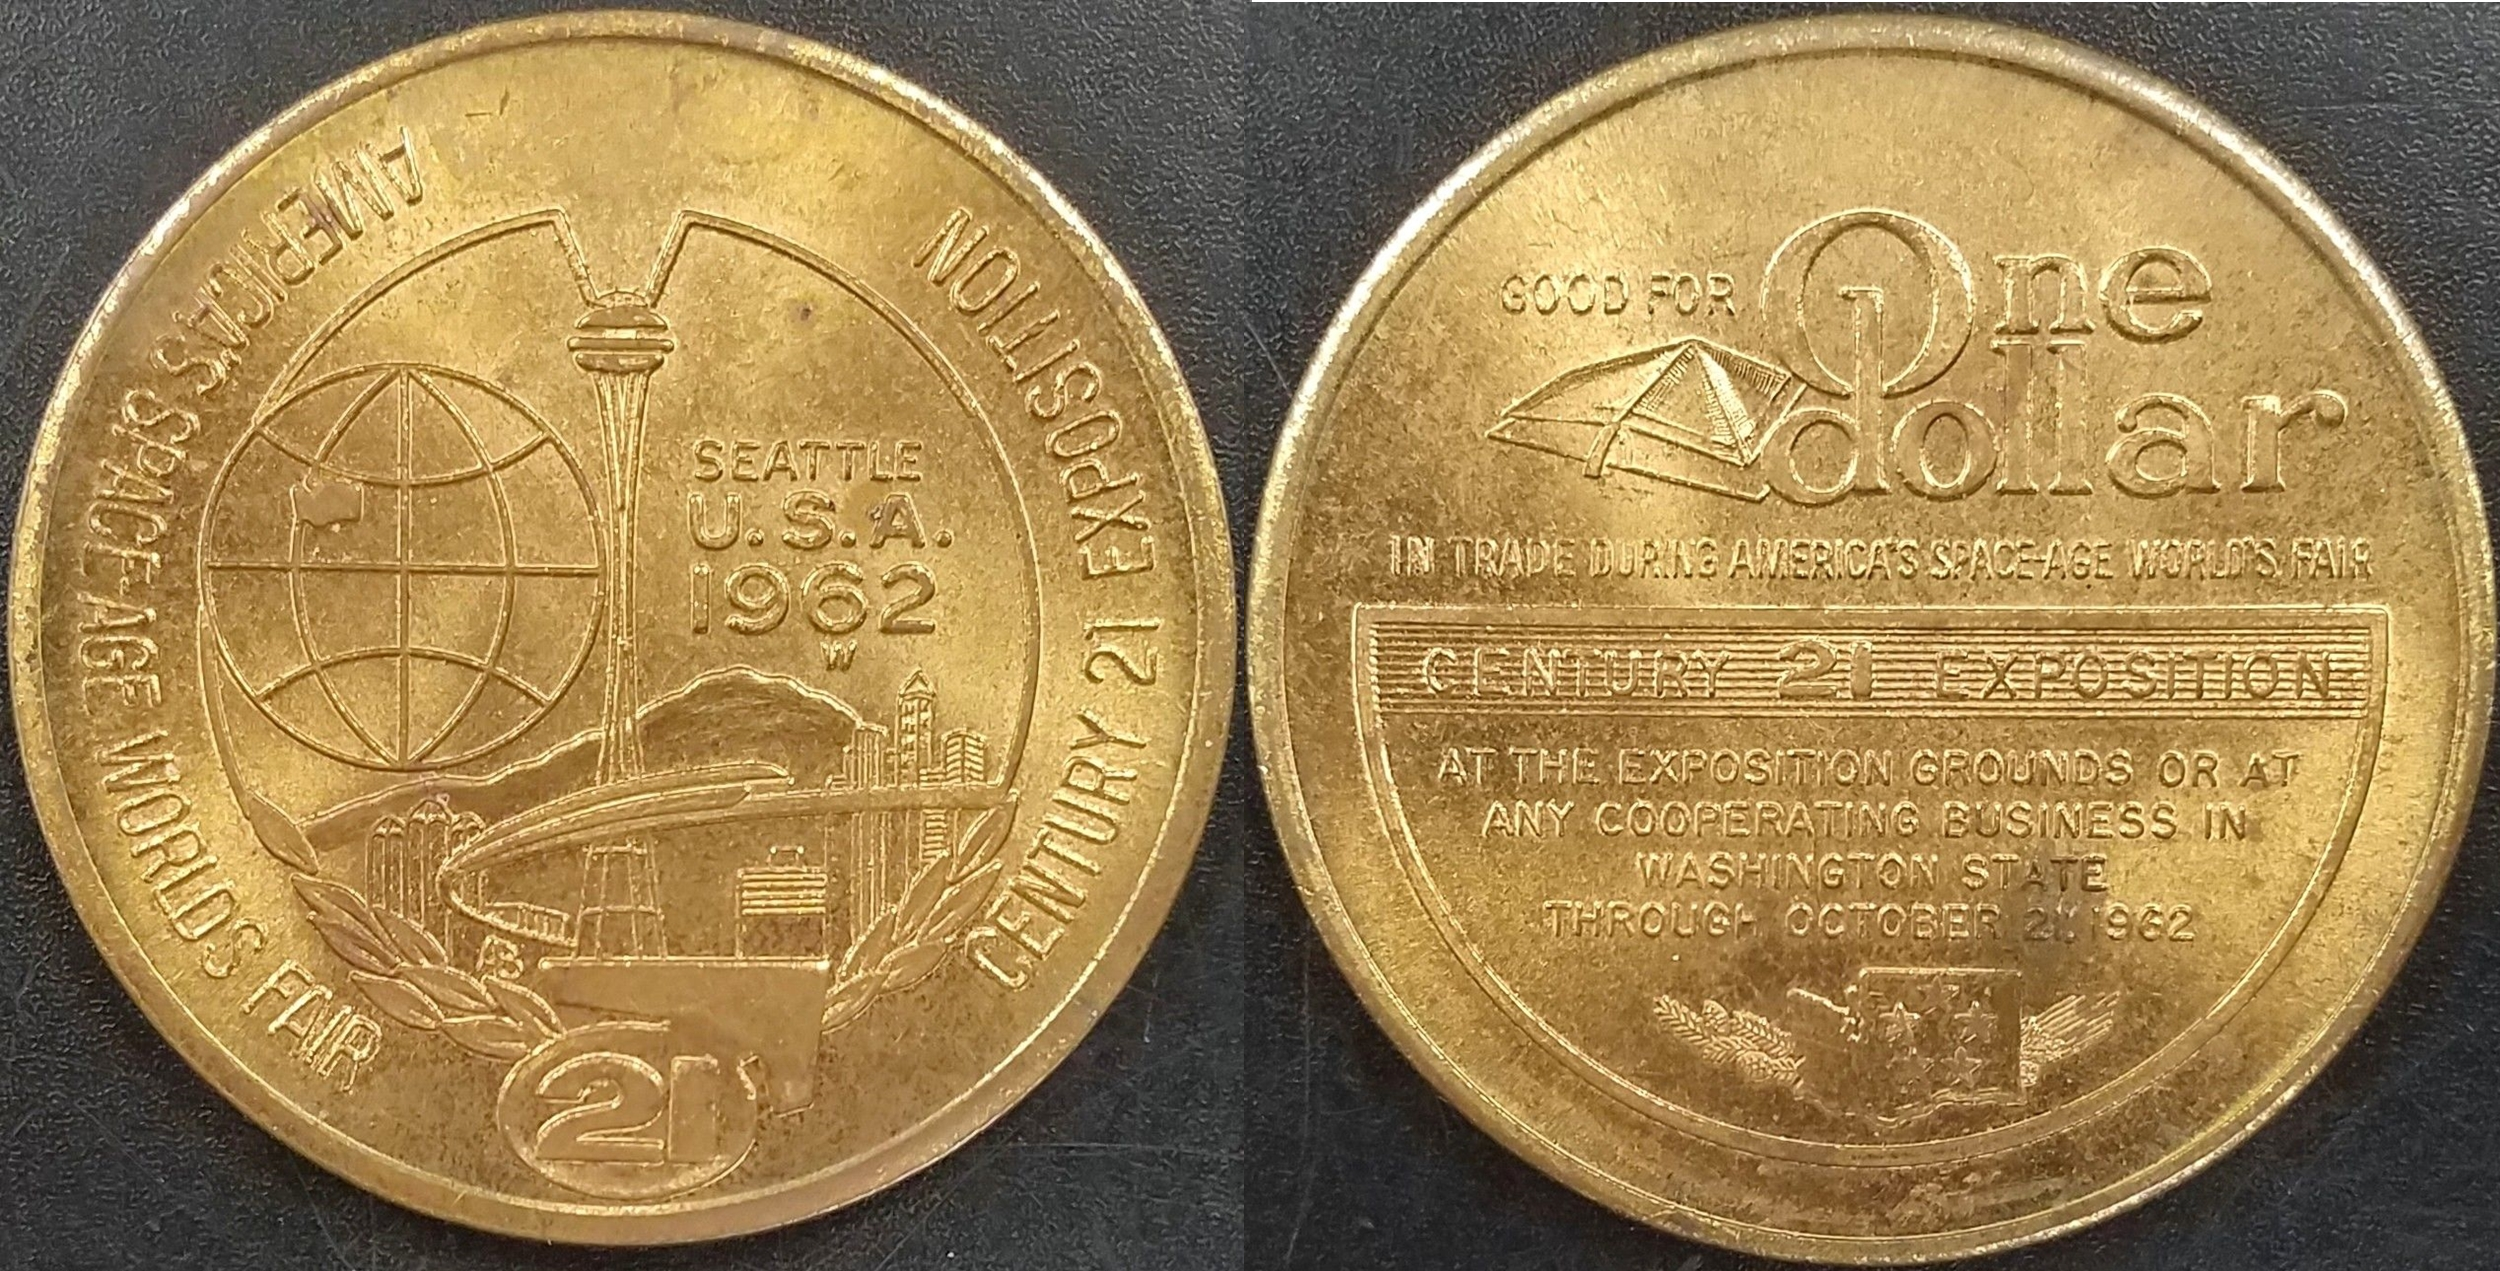 Trade dollar token used at the Seattle World's Fair, 1962.